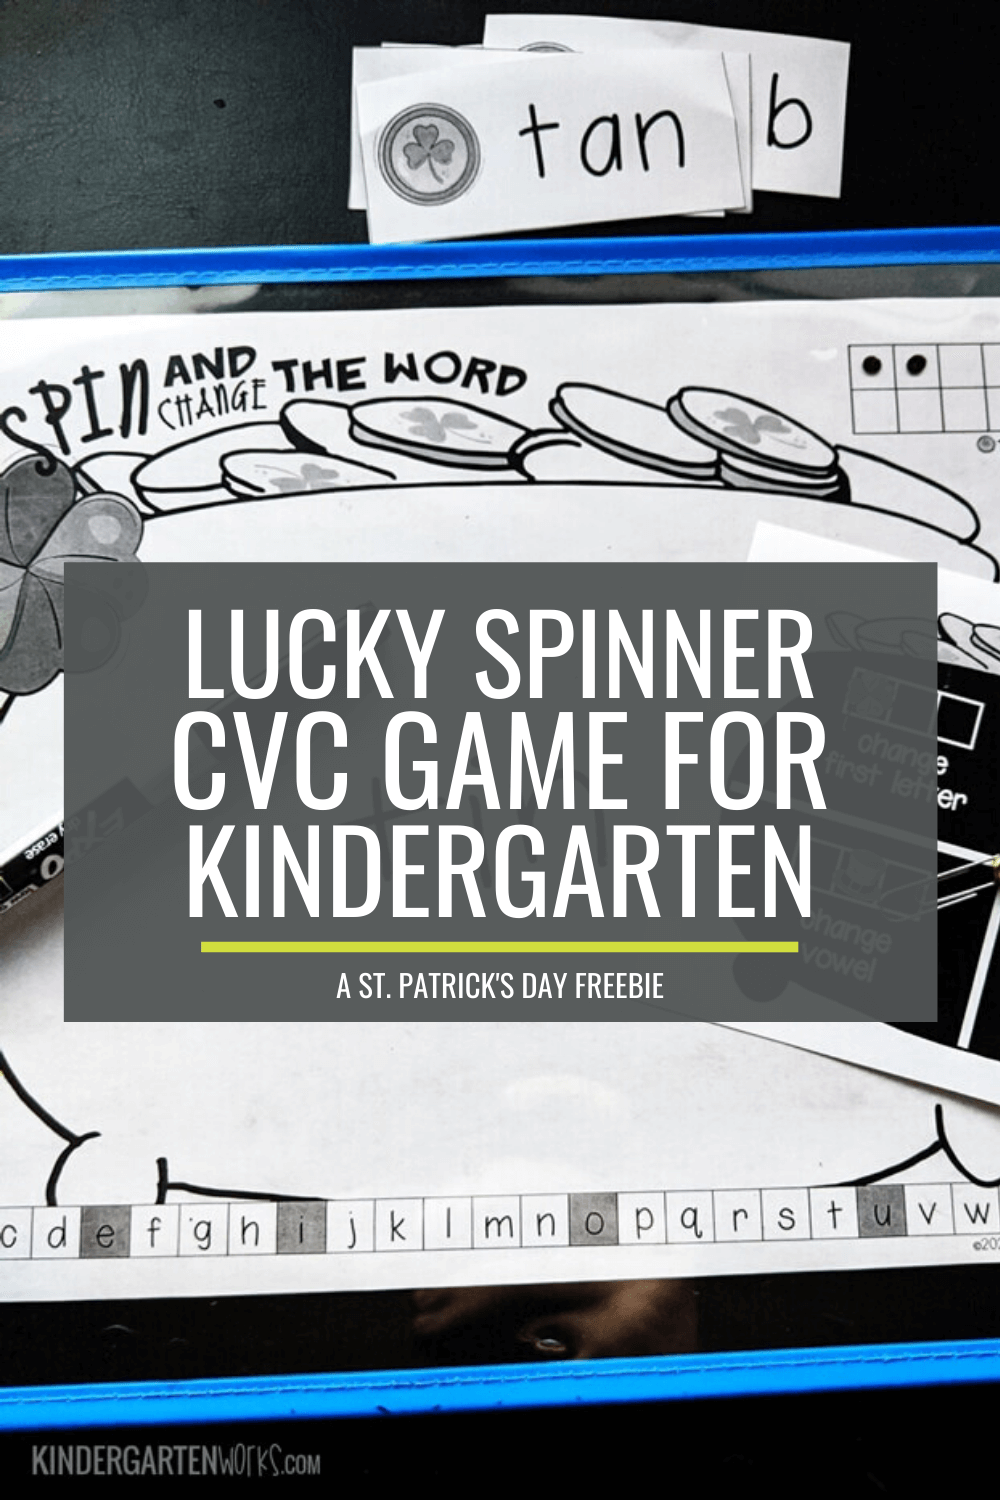 Lucky Spinner CVC Game for Kindergarten – A St. Patrick's Day Freebie